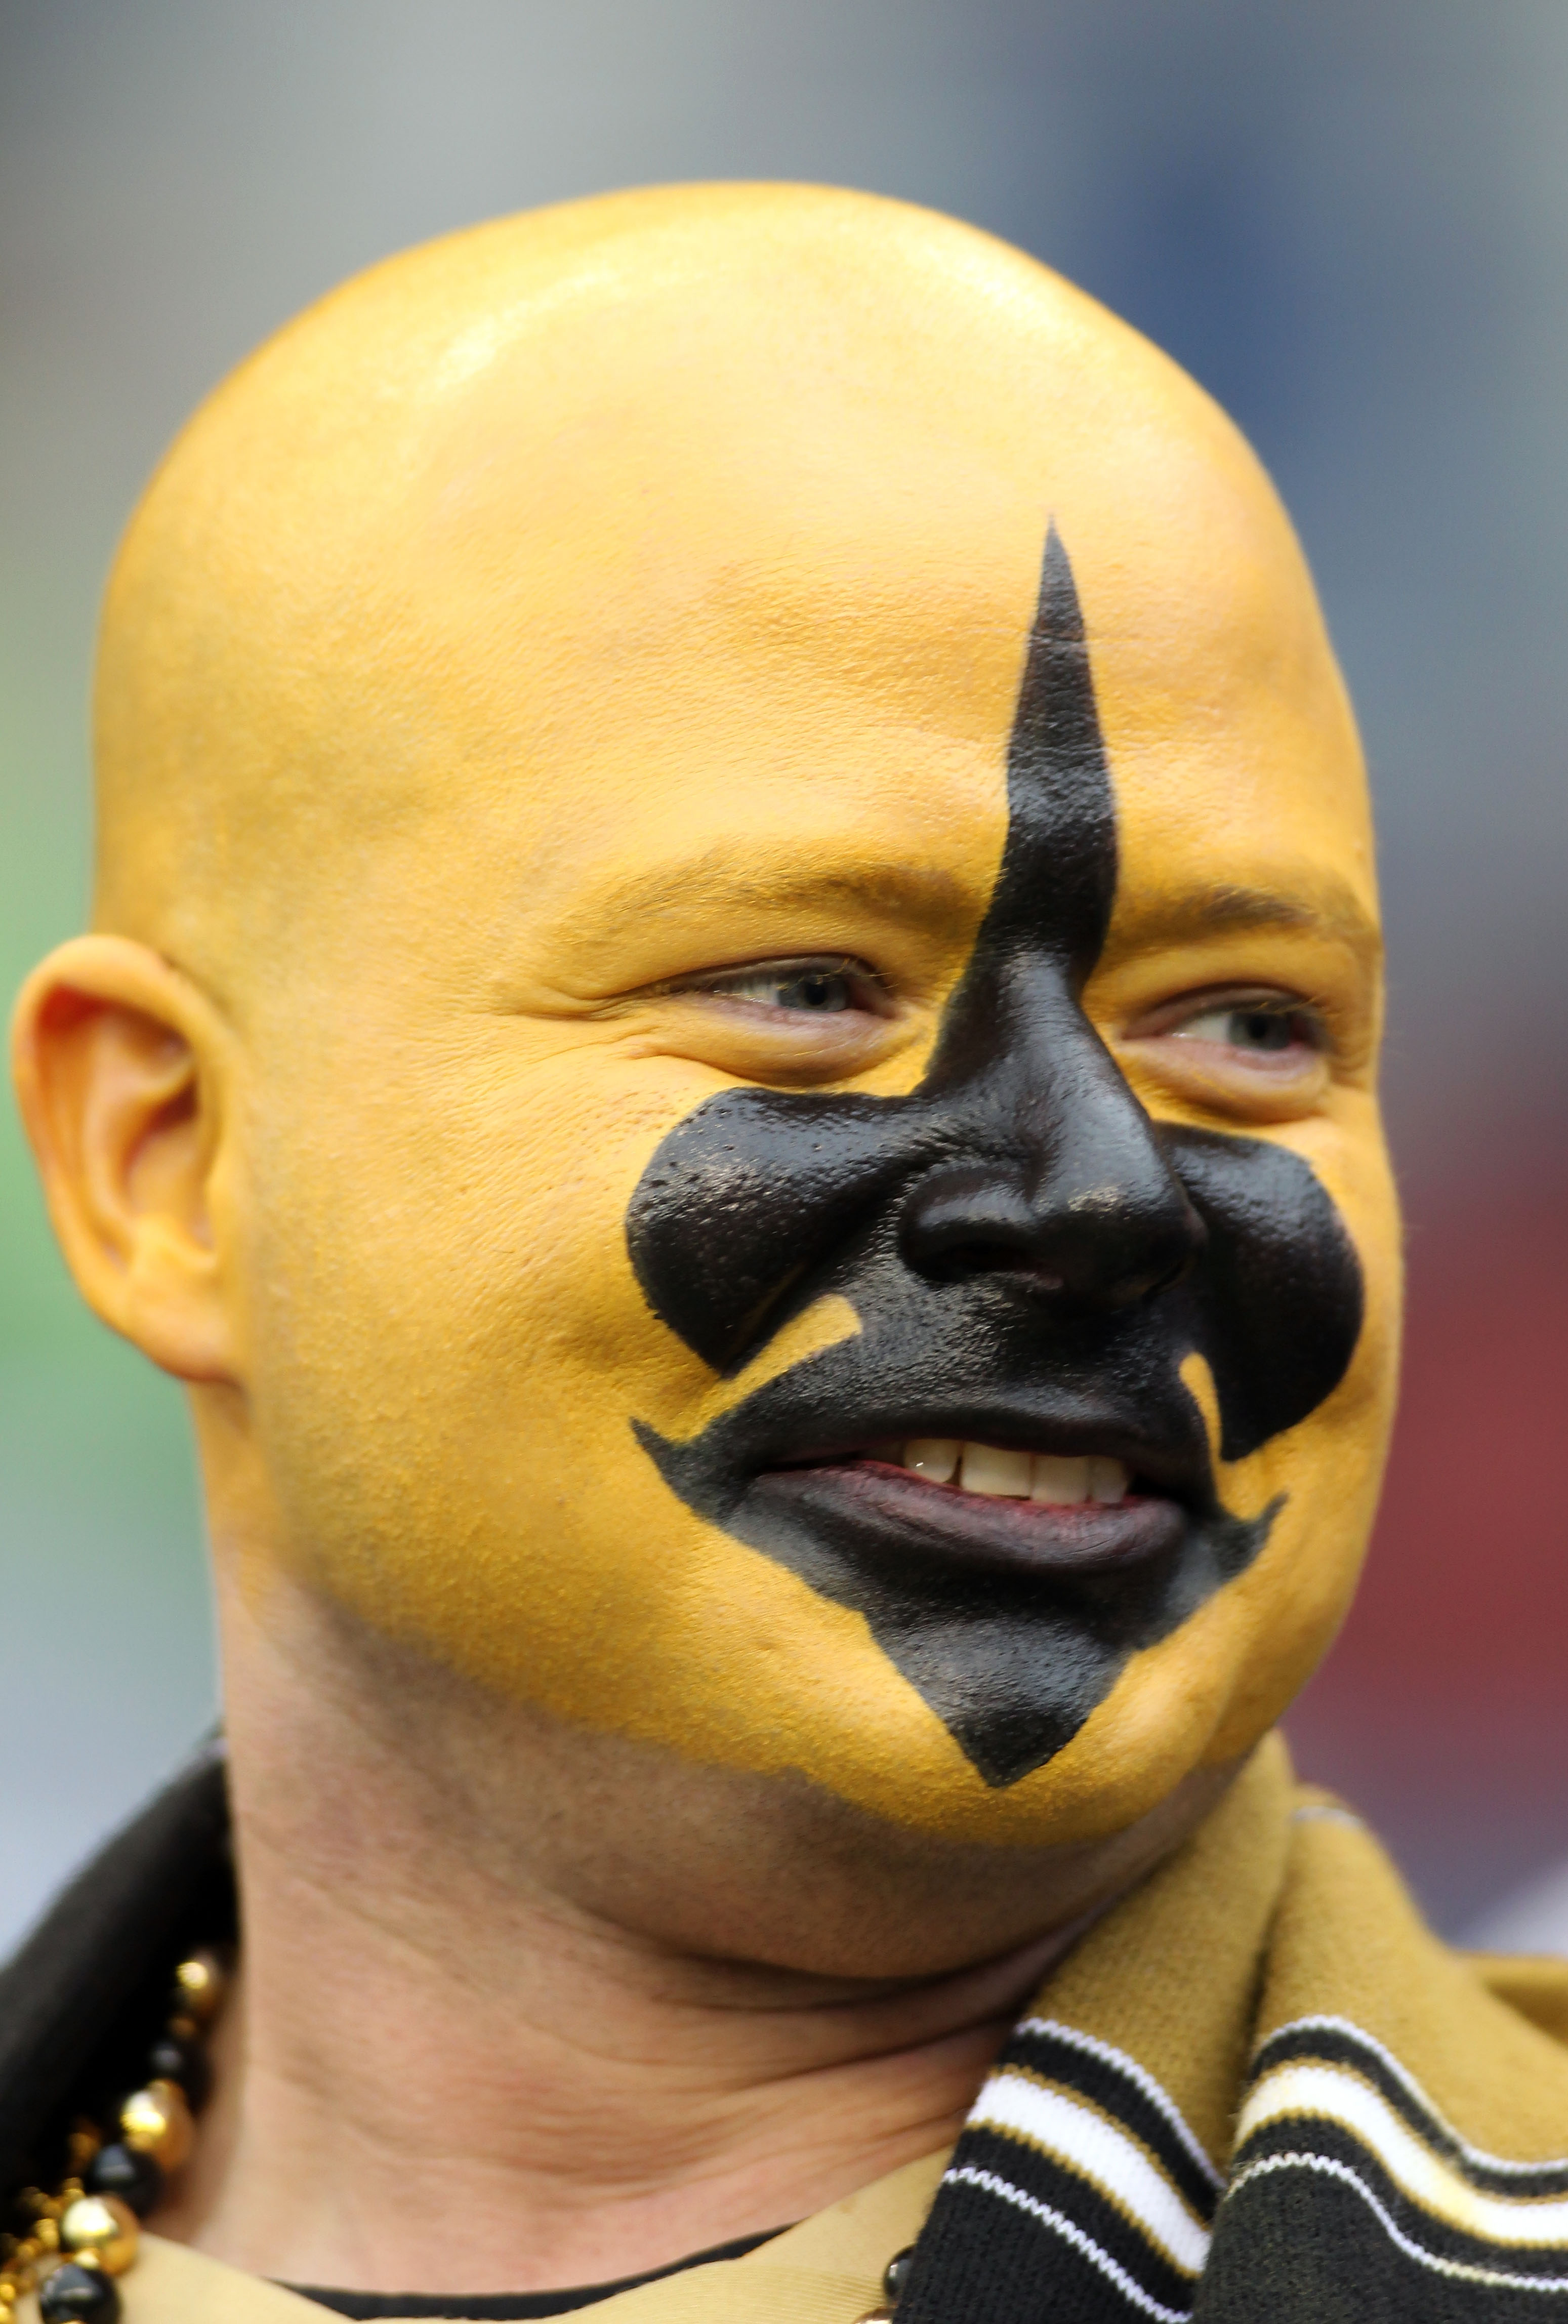 SEATTLE, WA - JANUARY 08:  A New Orleans Saints fan smiles before the Saints take on the Seattle Seahawks during the 2011 NFC wild-card playoff game at Qwest Field on January 8, 2011 in Seattle, Washington.  (Photo by Jonathan Ferrey/Getty Images)